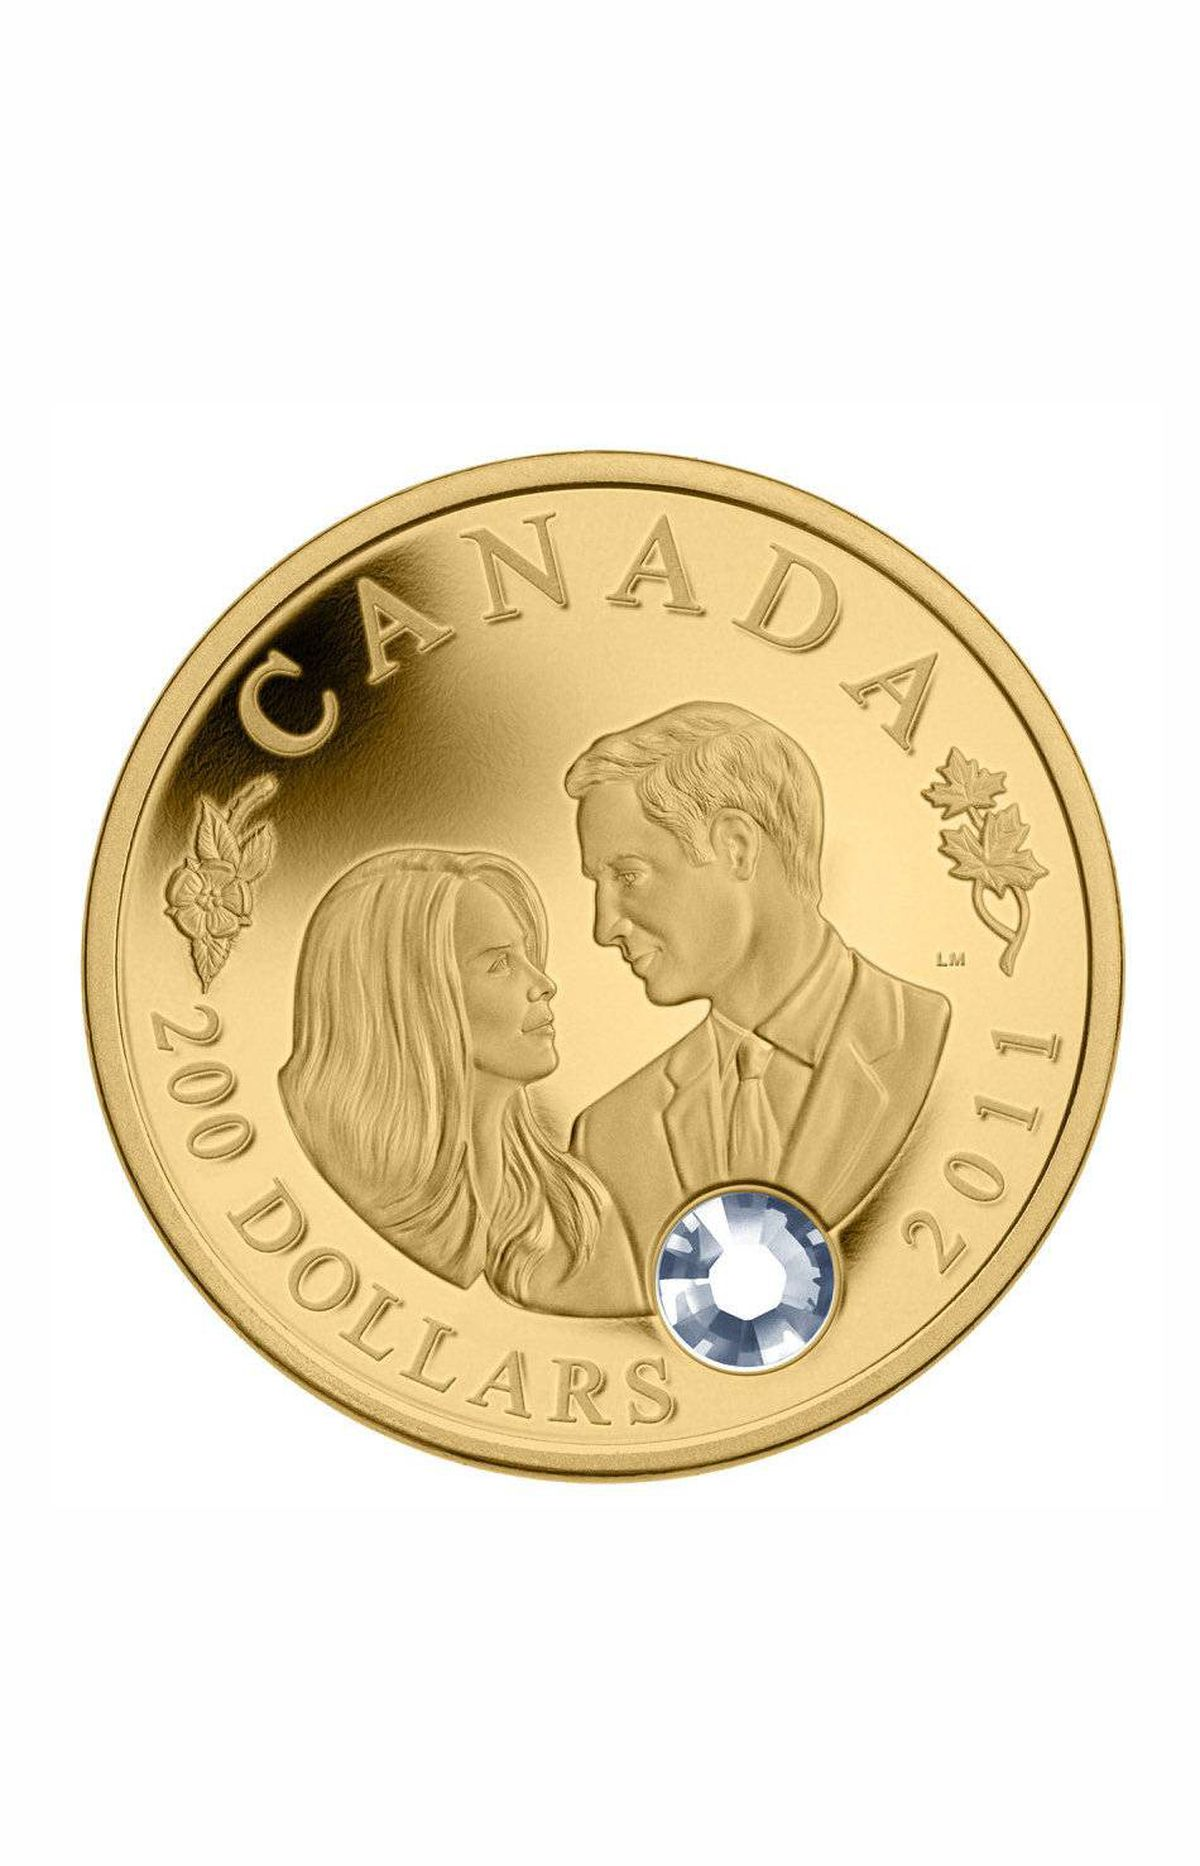 But the Canadian $200 coin really missed the mark. Exactly who are those people supposed to be?